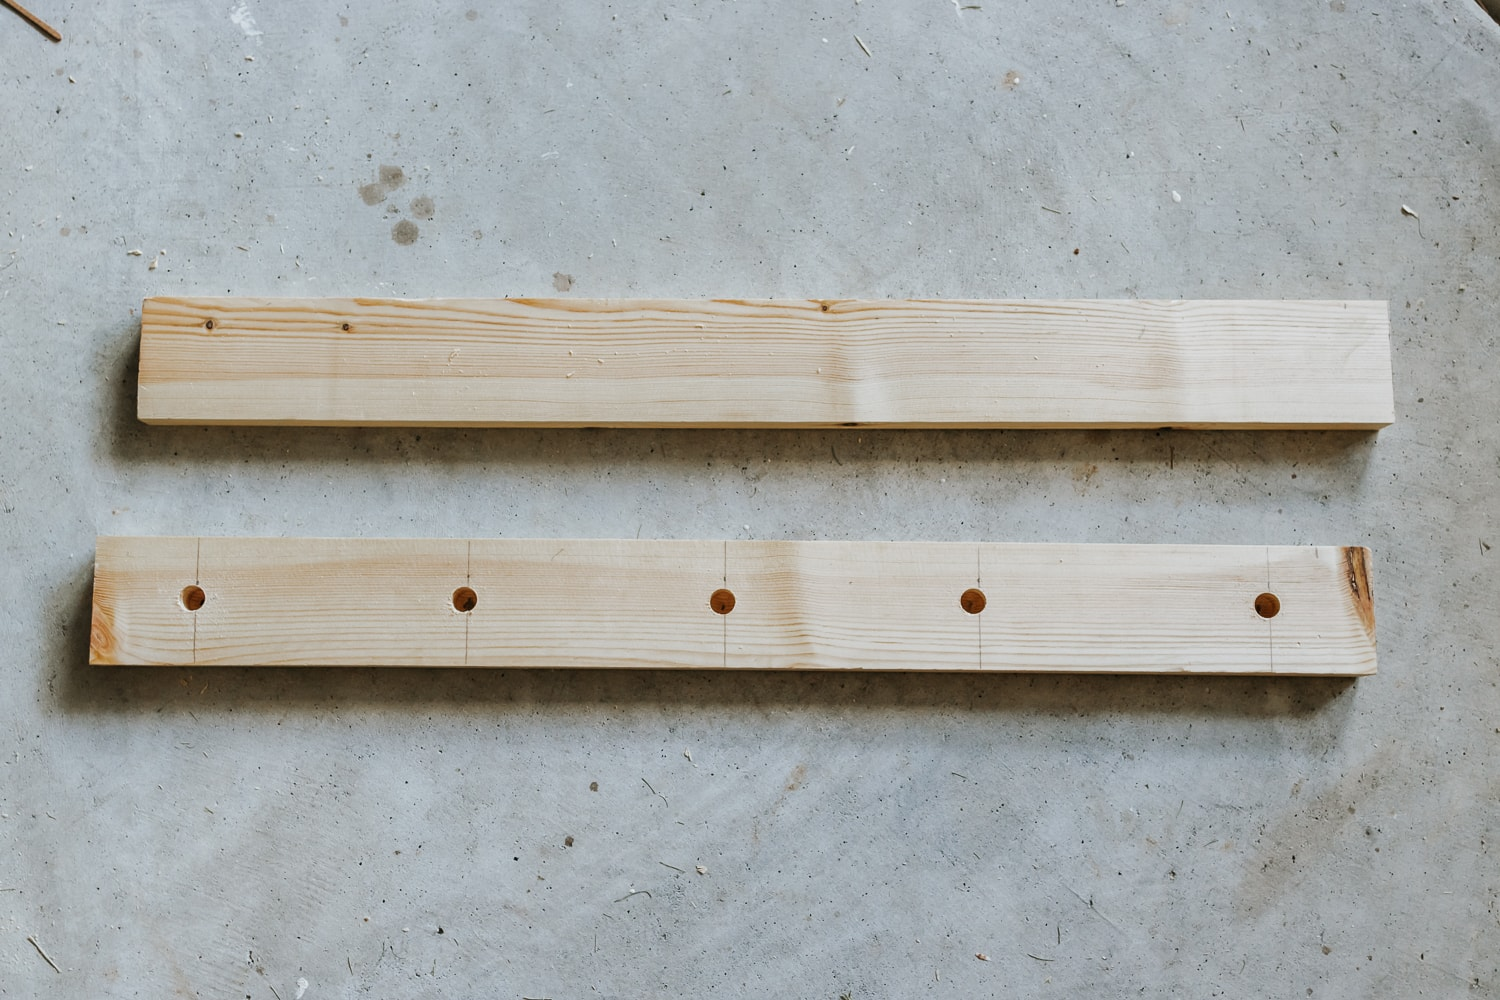 how to create a shaker peg rail with shelf - two peices of wood cut to size